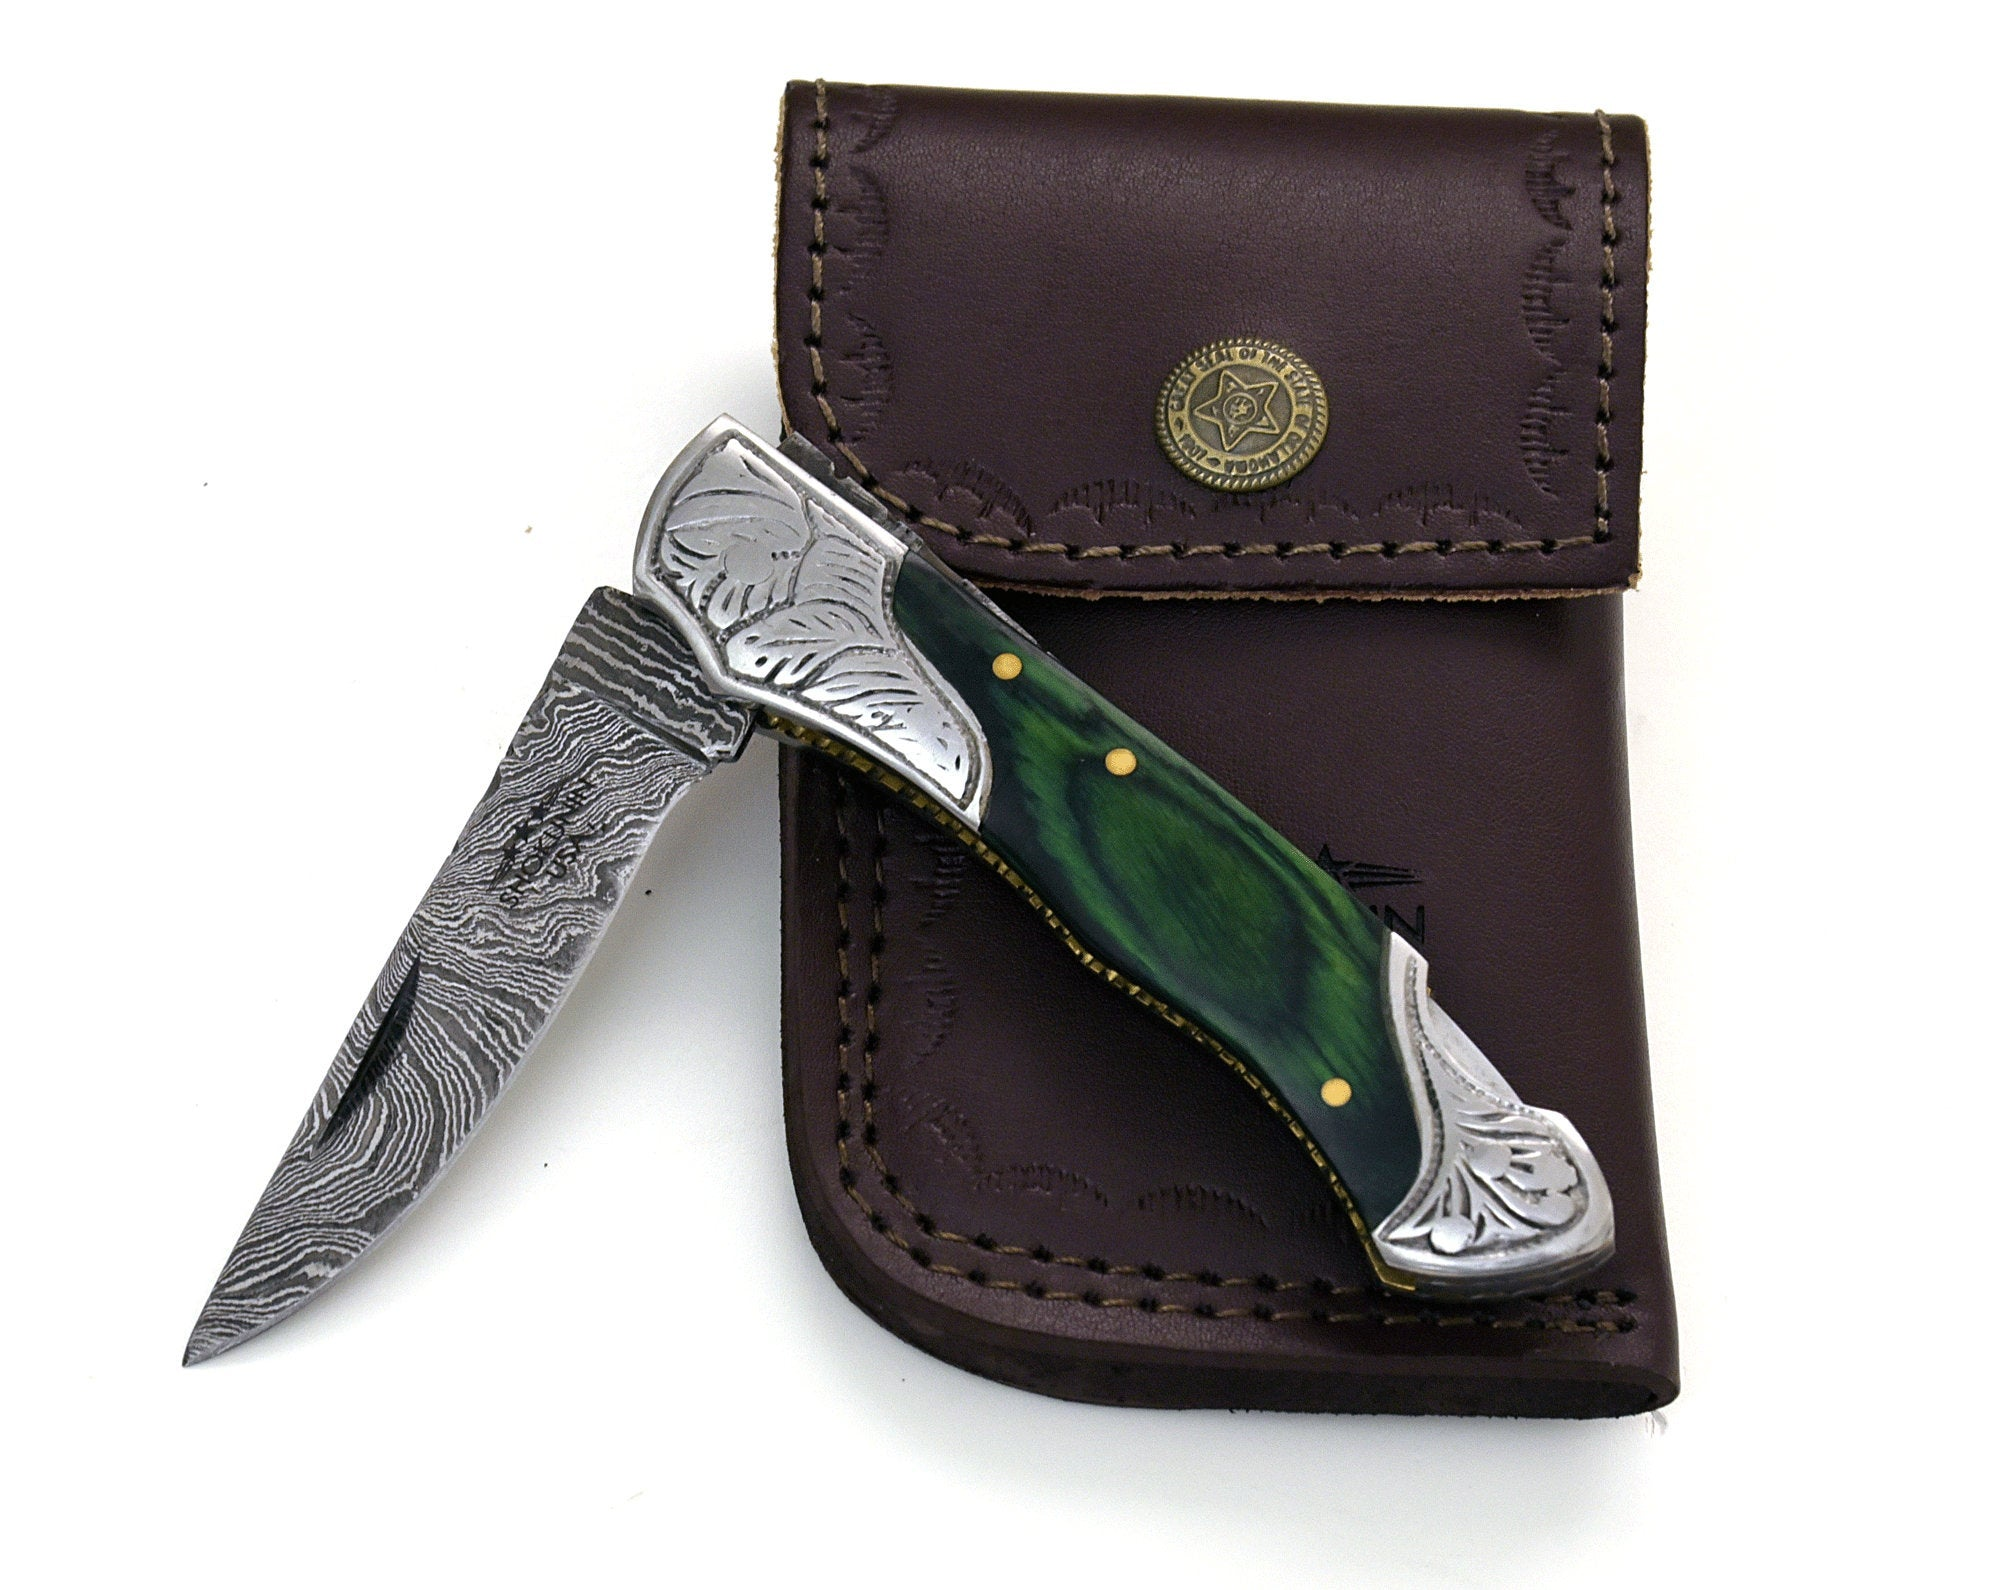 "DAMASCUS Knife, Folding knife, Pocket knife, EDC damascus steel hunting utility knife tactical camping knife 7"" Every day carry GREEN - SHOKUNIN USA"